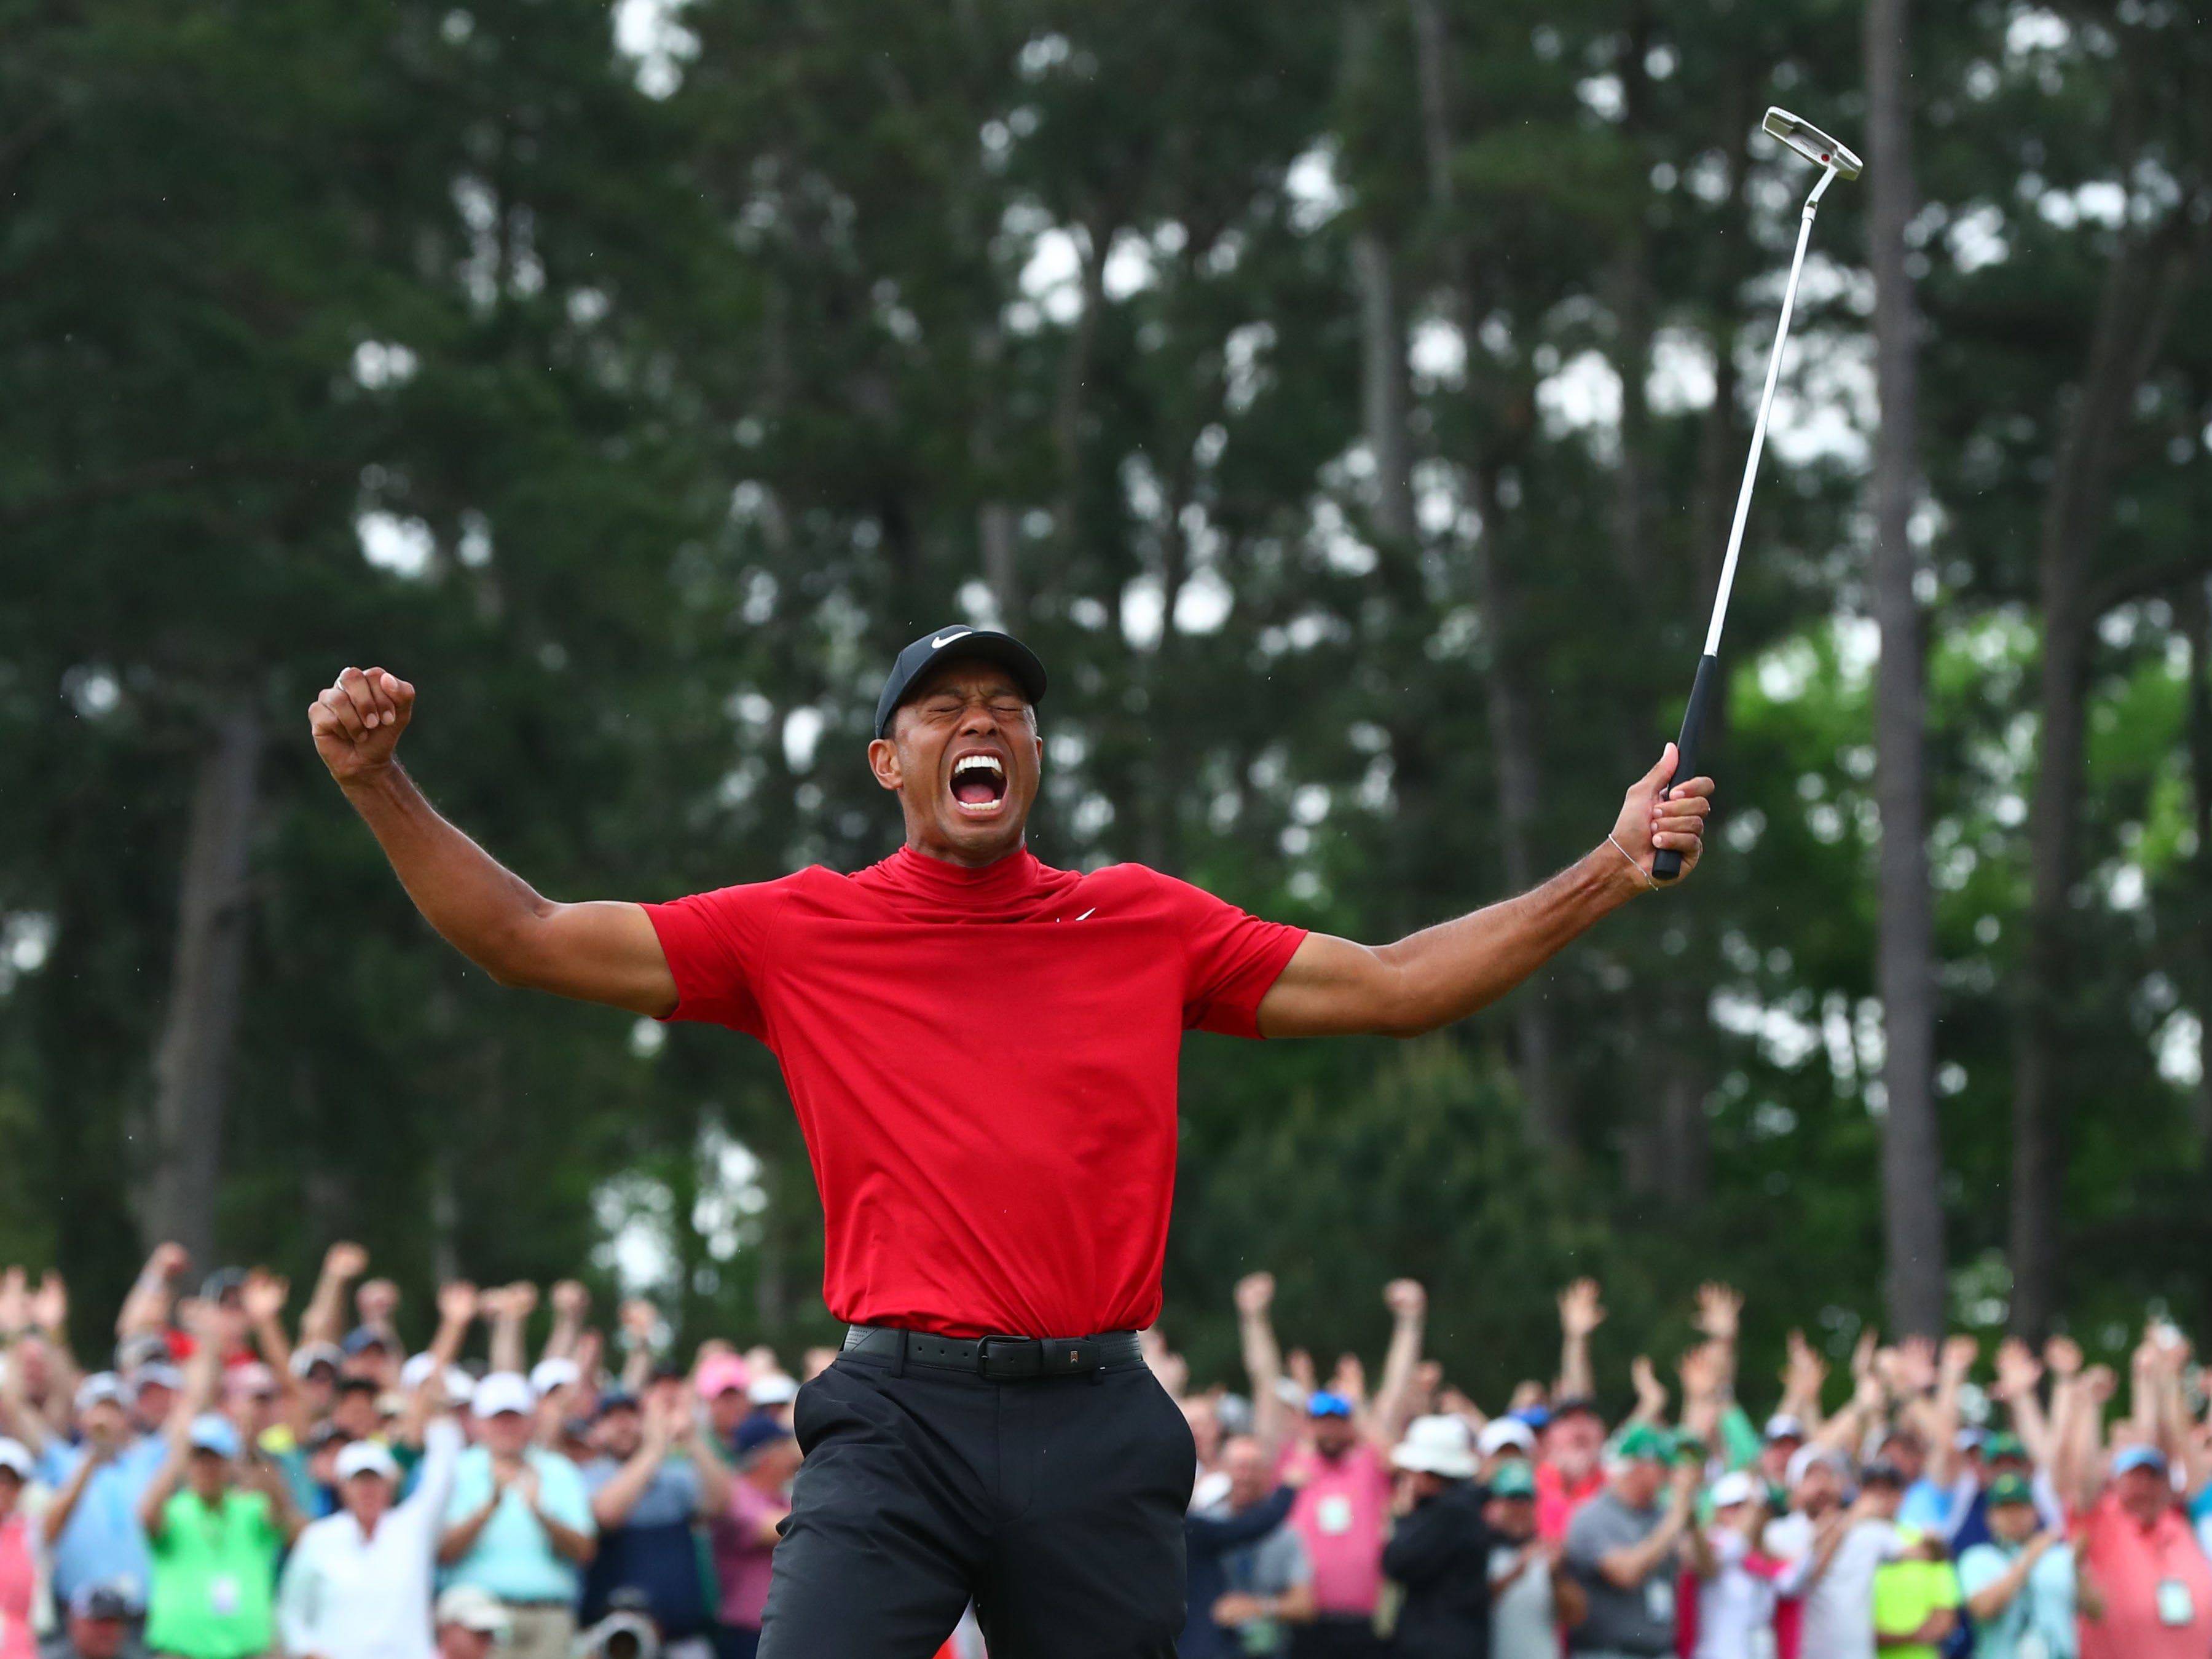 Tiger Woods celebrates after making a putt on the 18th green to win his 15th major championship and his first since 2008.